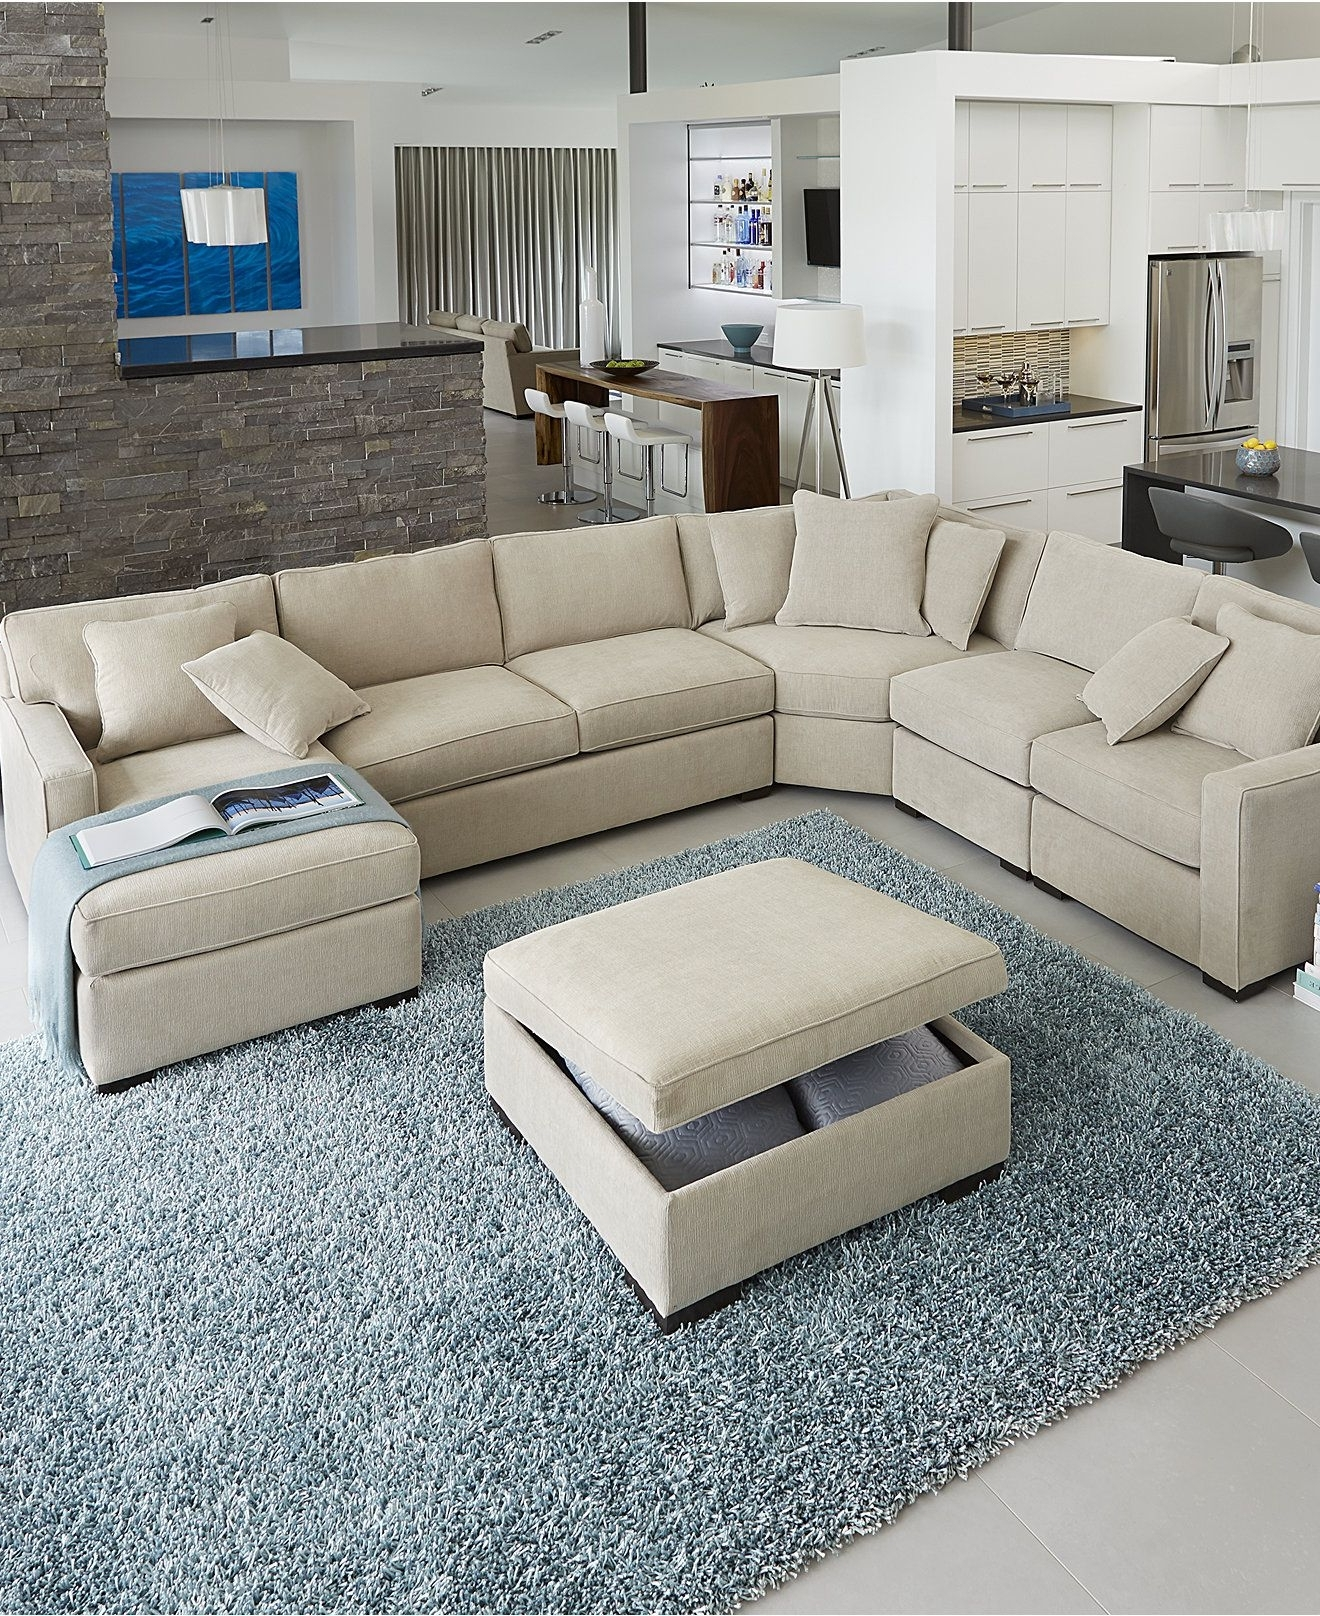 Popular Radley Fabric Sectional Sofa Collection, Created For Macy's In Macys Sectional Sofas (View 16 of 20)